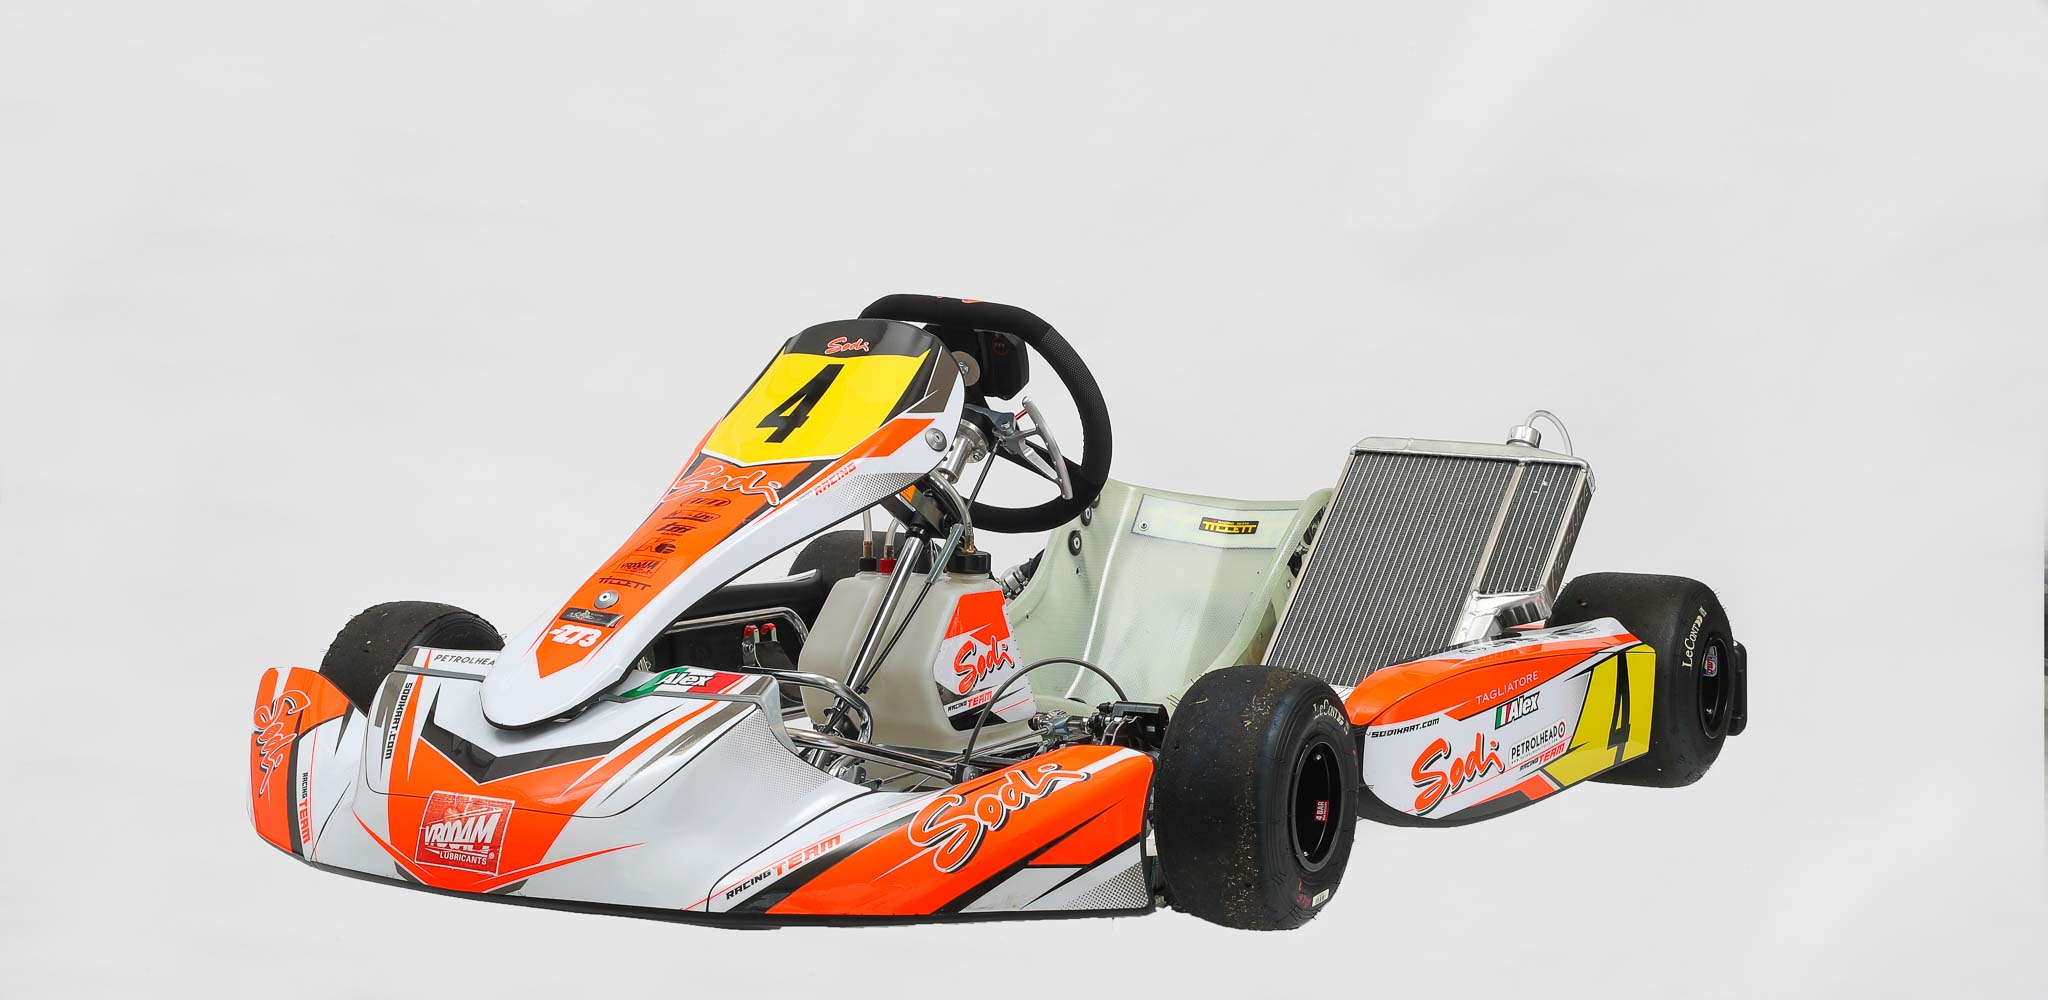 Analysis, details and secrets of the Sodikart Sigma KZ for shifter